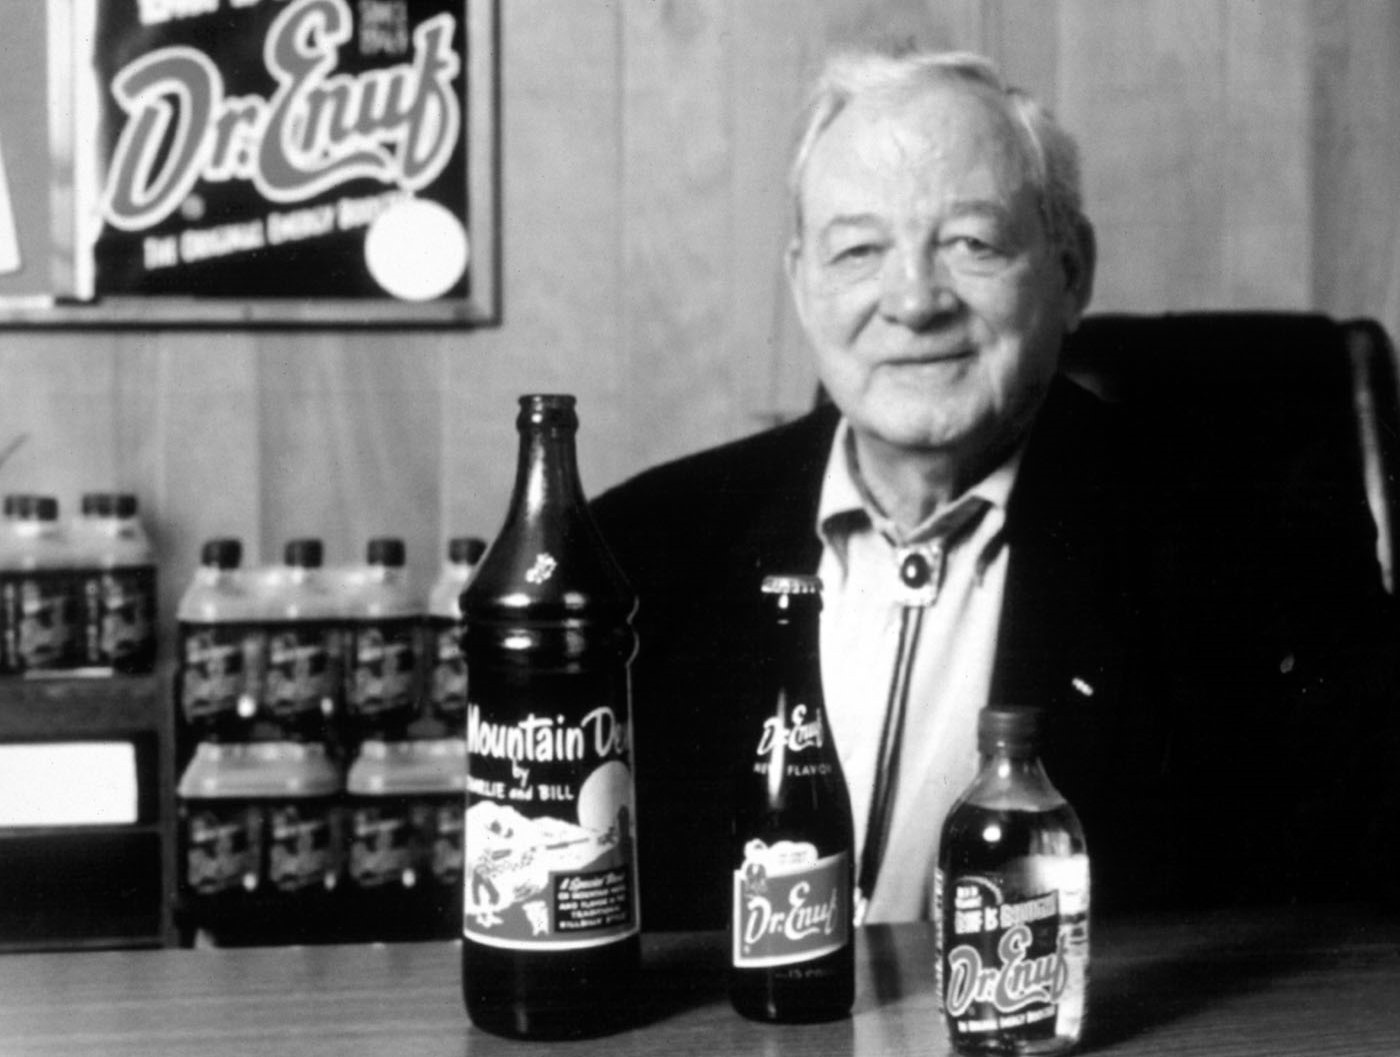 Charles O. Gordon, Sr., founded Tri-City Beverage shortly after World War II.